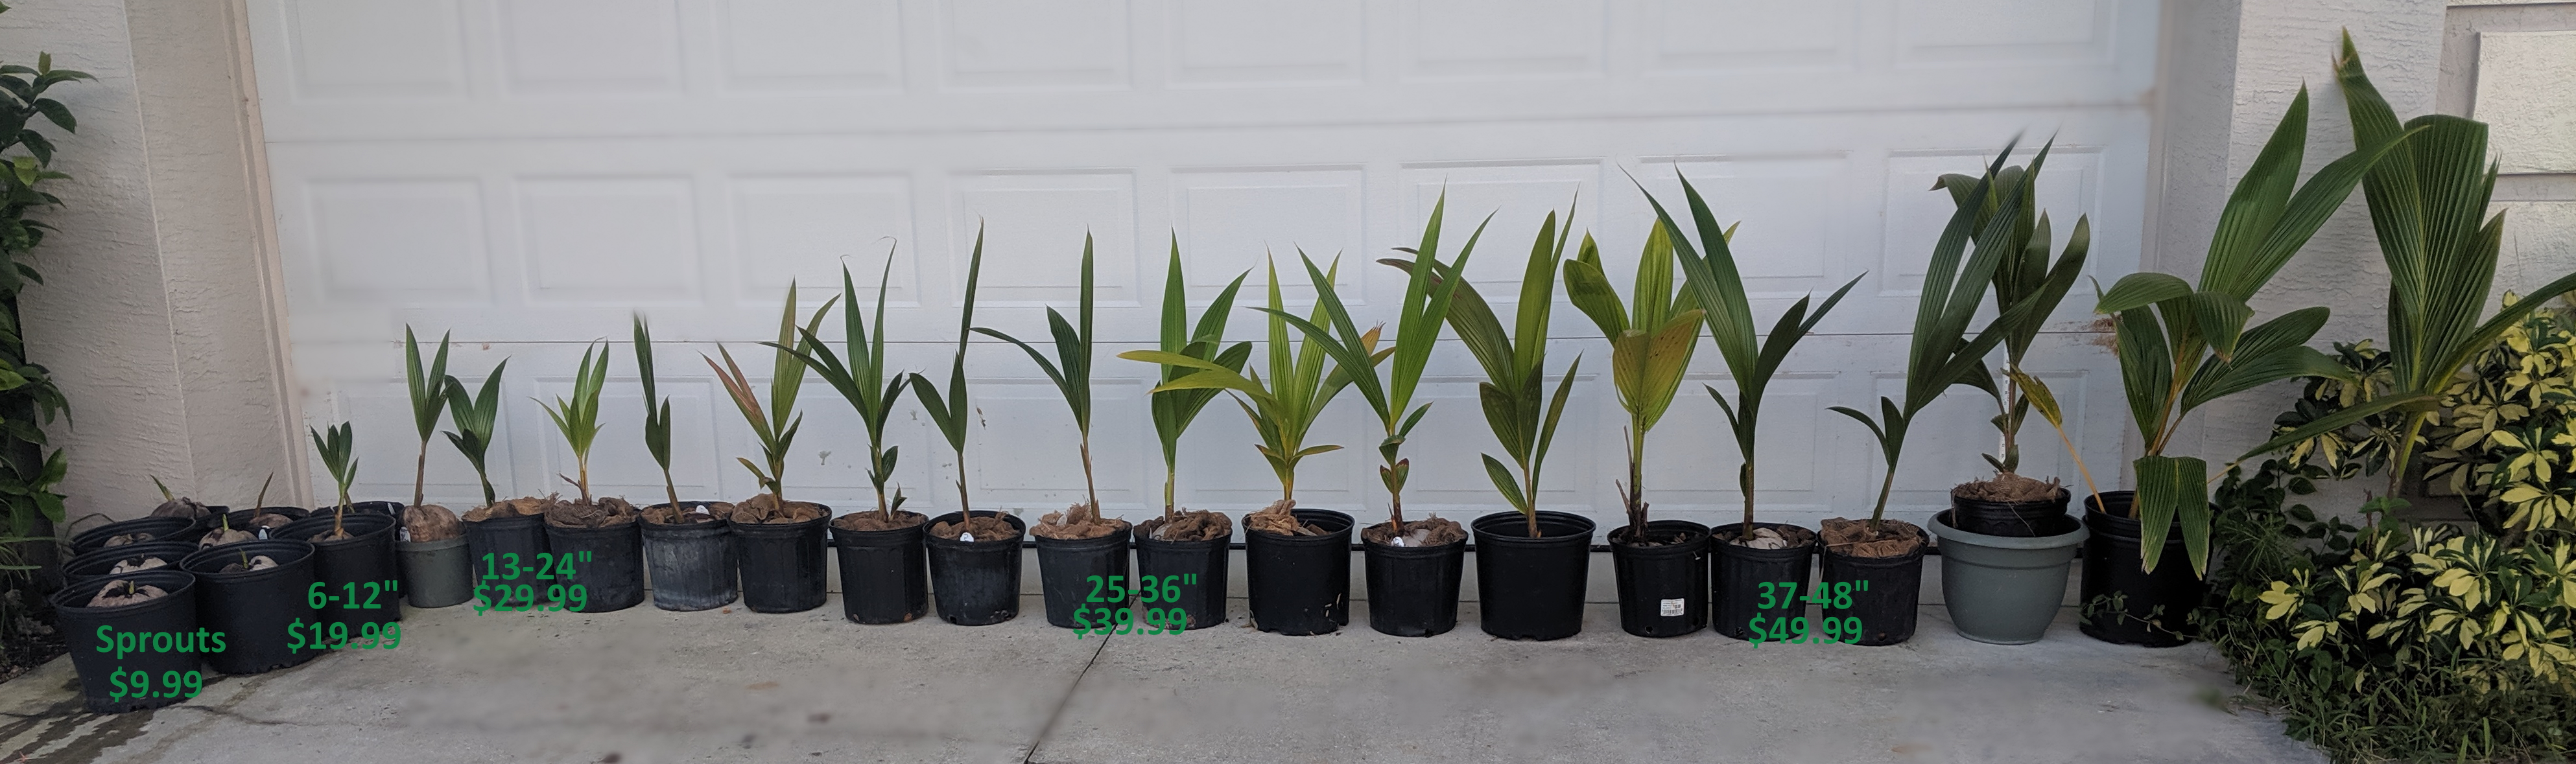 southfloridacoconuts.com coconut trees all sizes spouted - 48 inches with measurements prices